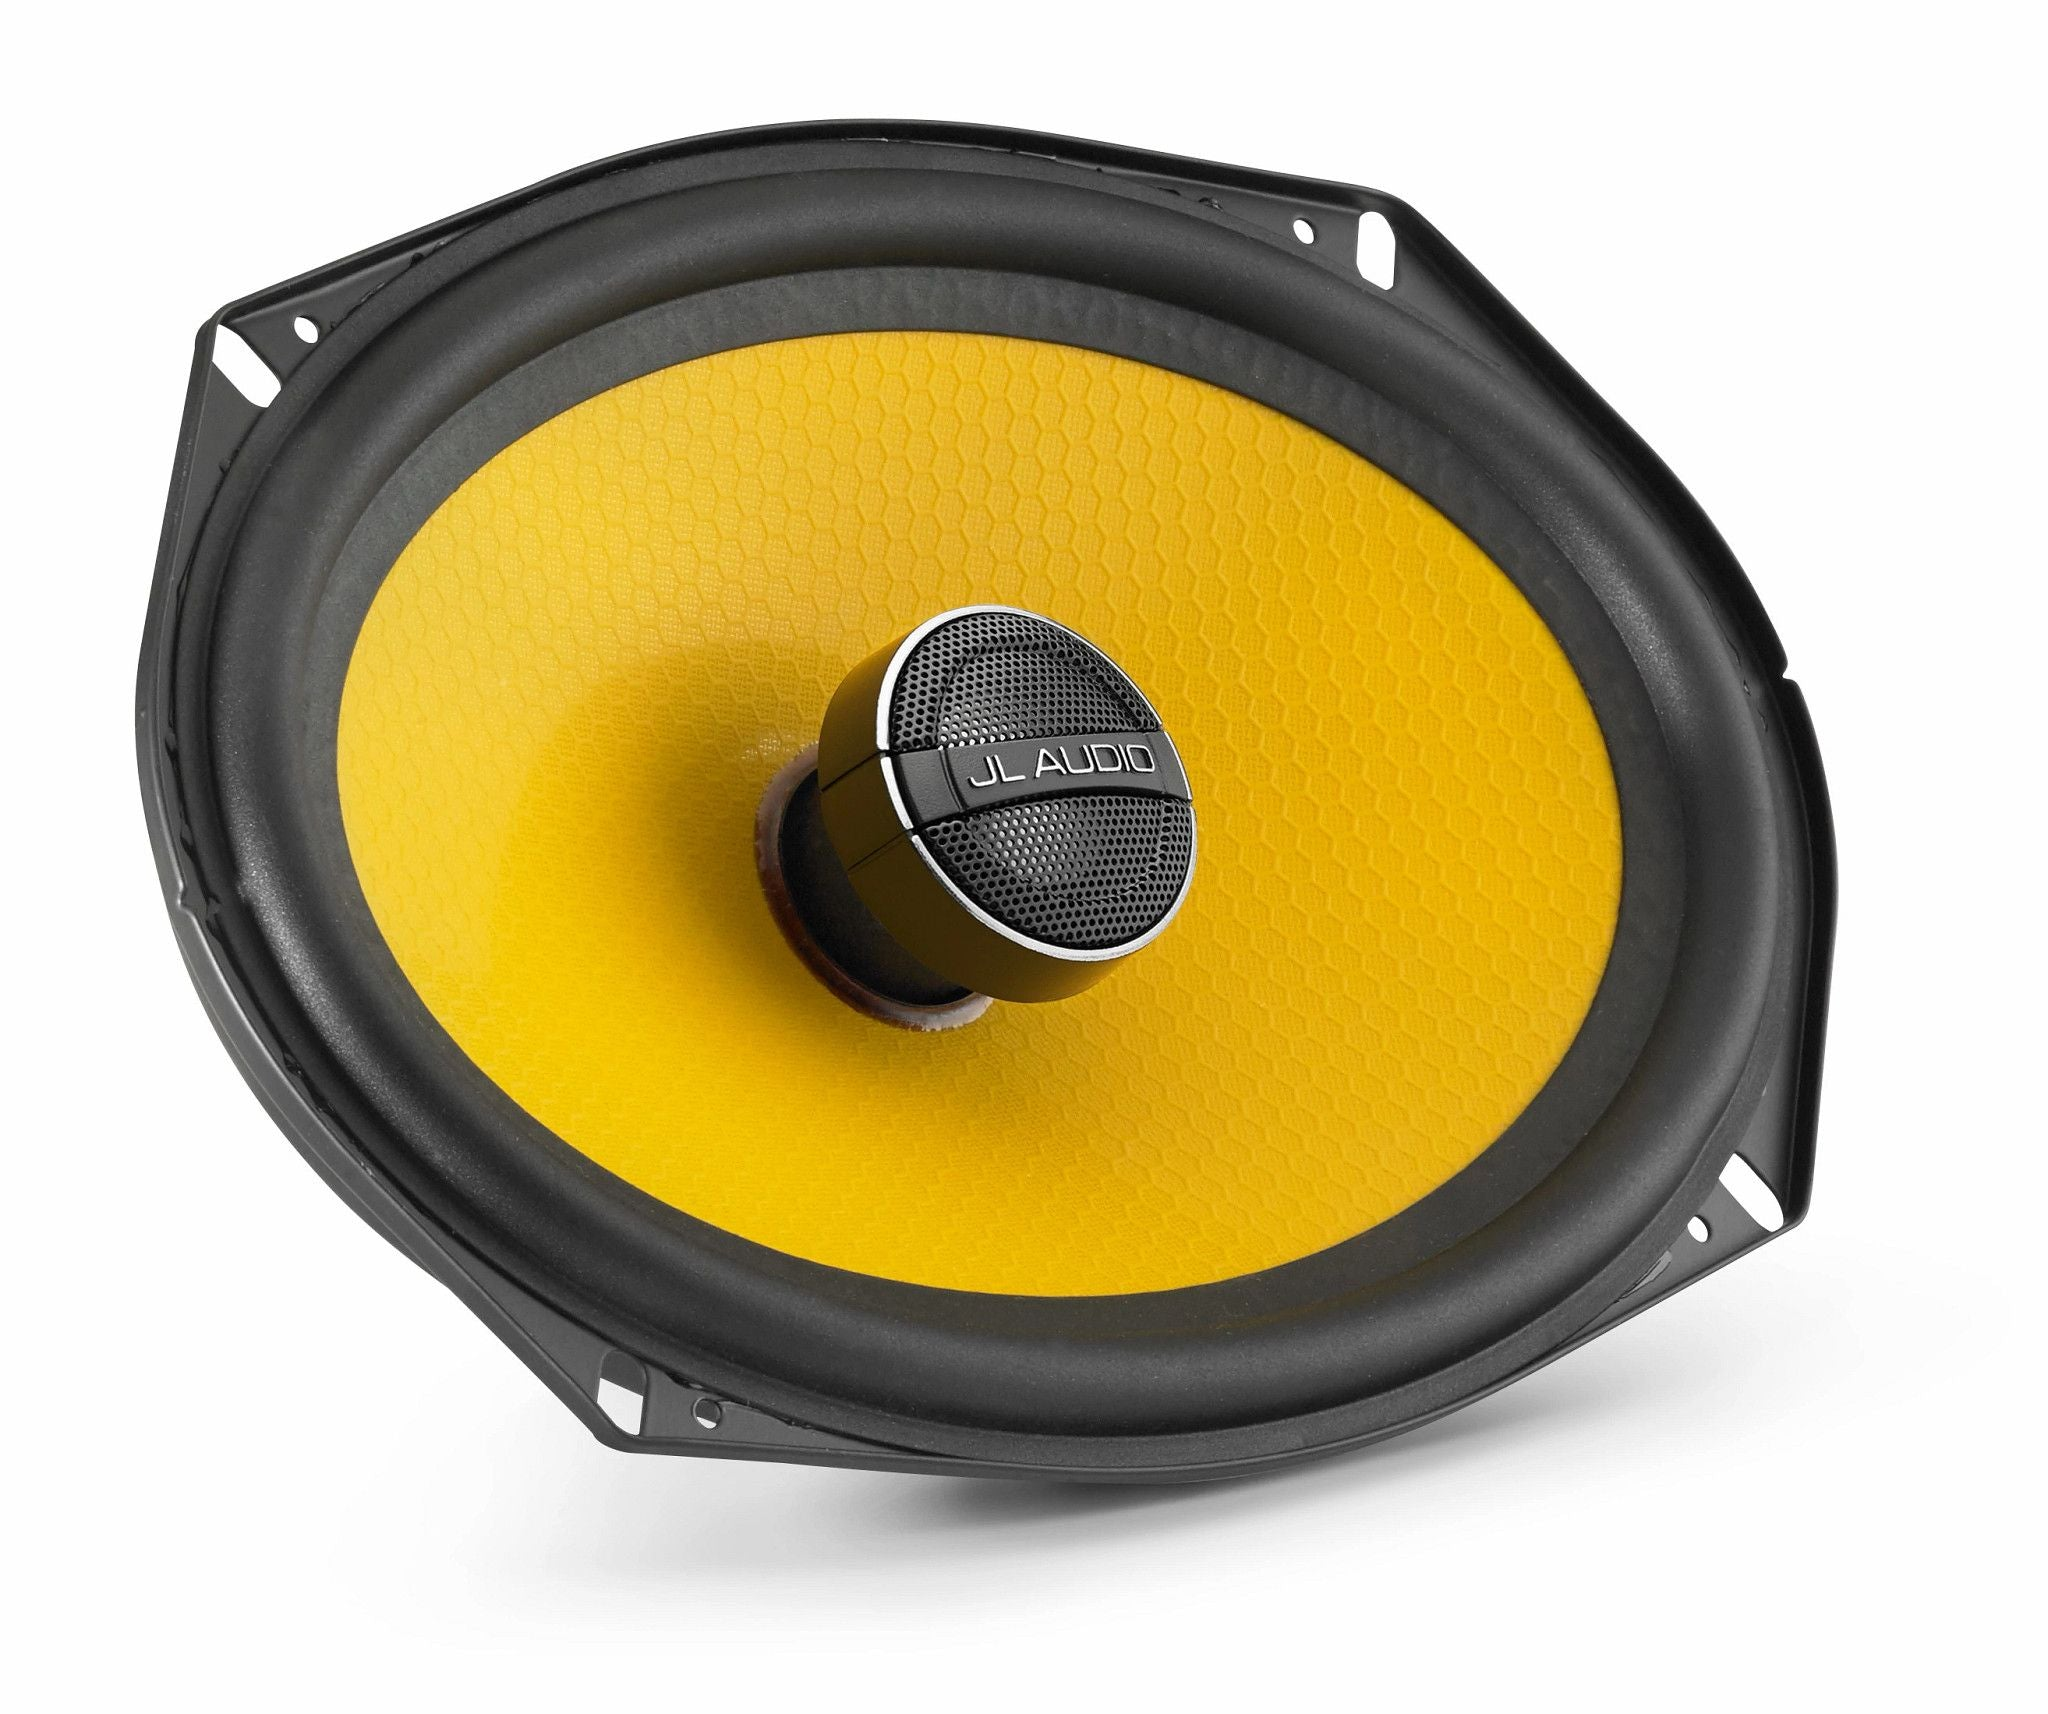 Front of C1-690x Coaxial Speaker Facing Right